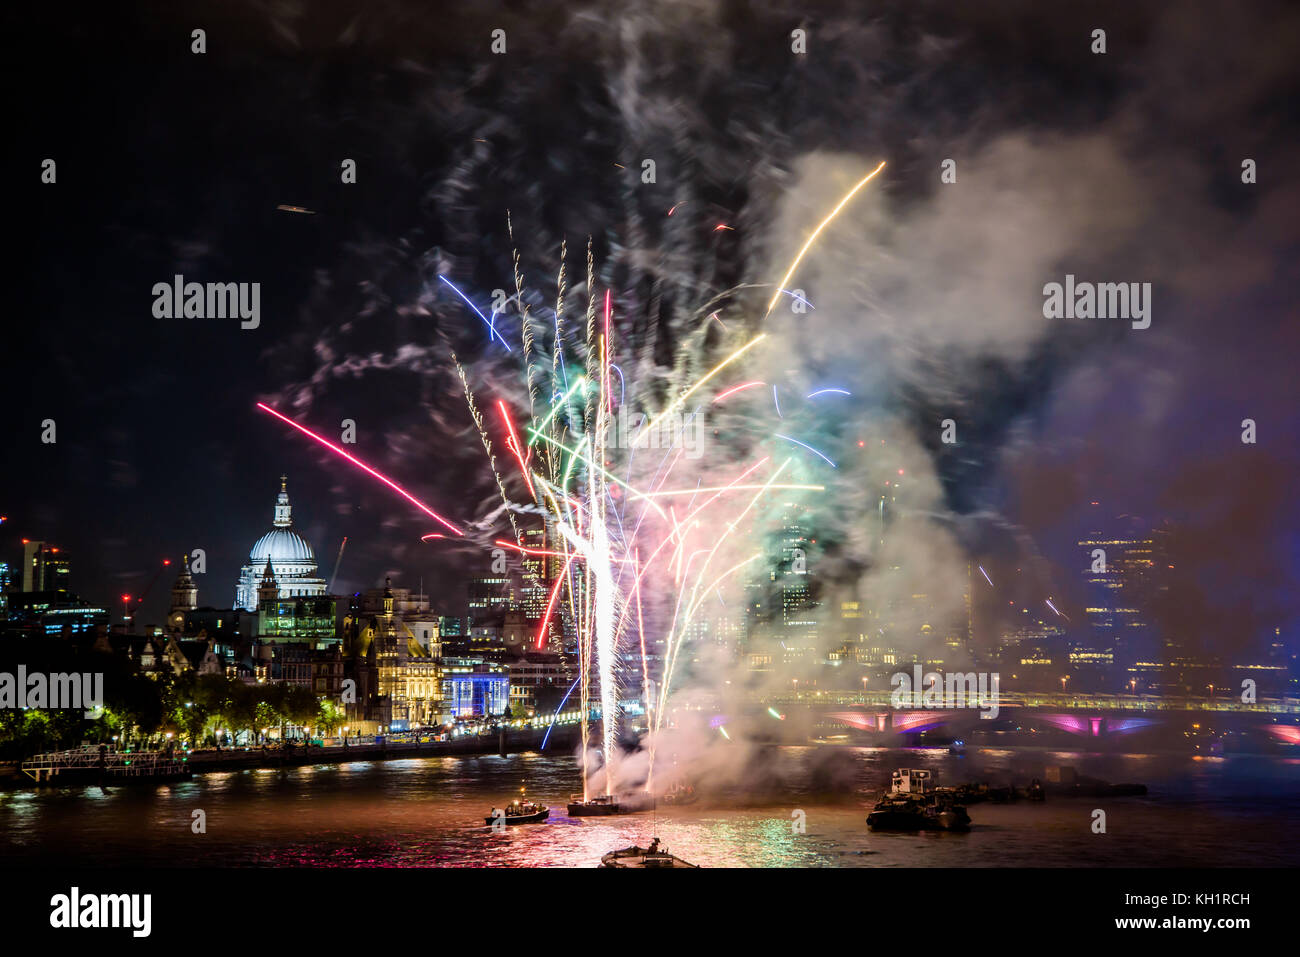 A spectacular fireworks display closes the annual celebrations for Lord Mayor's Show in London, England - Stock Image